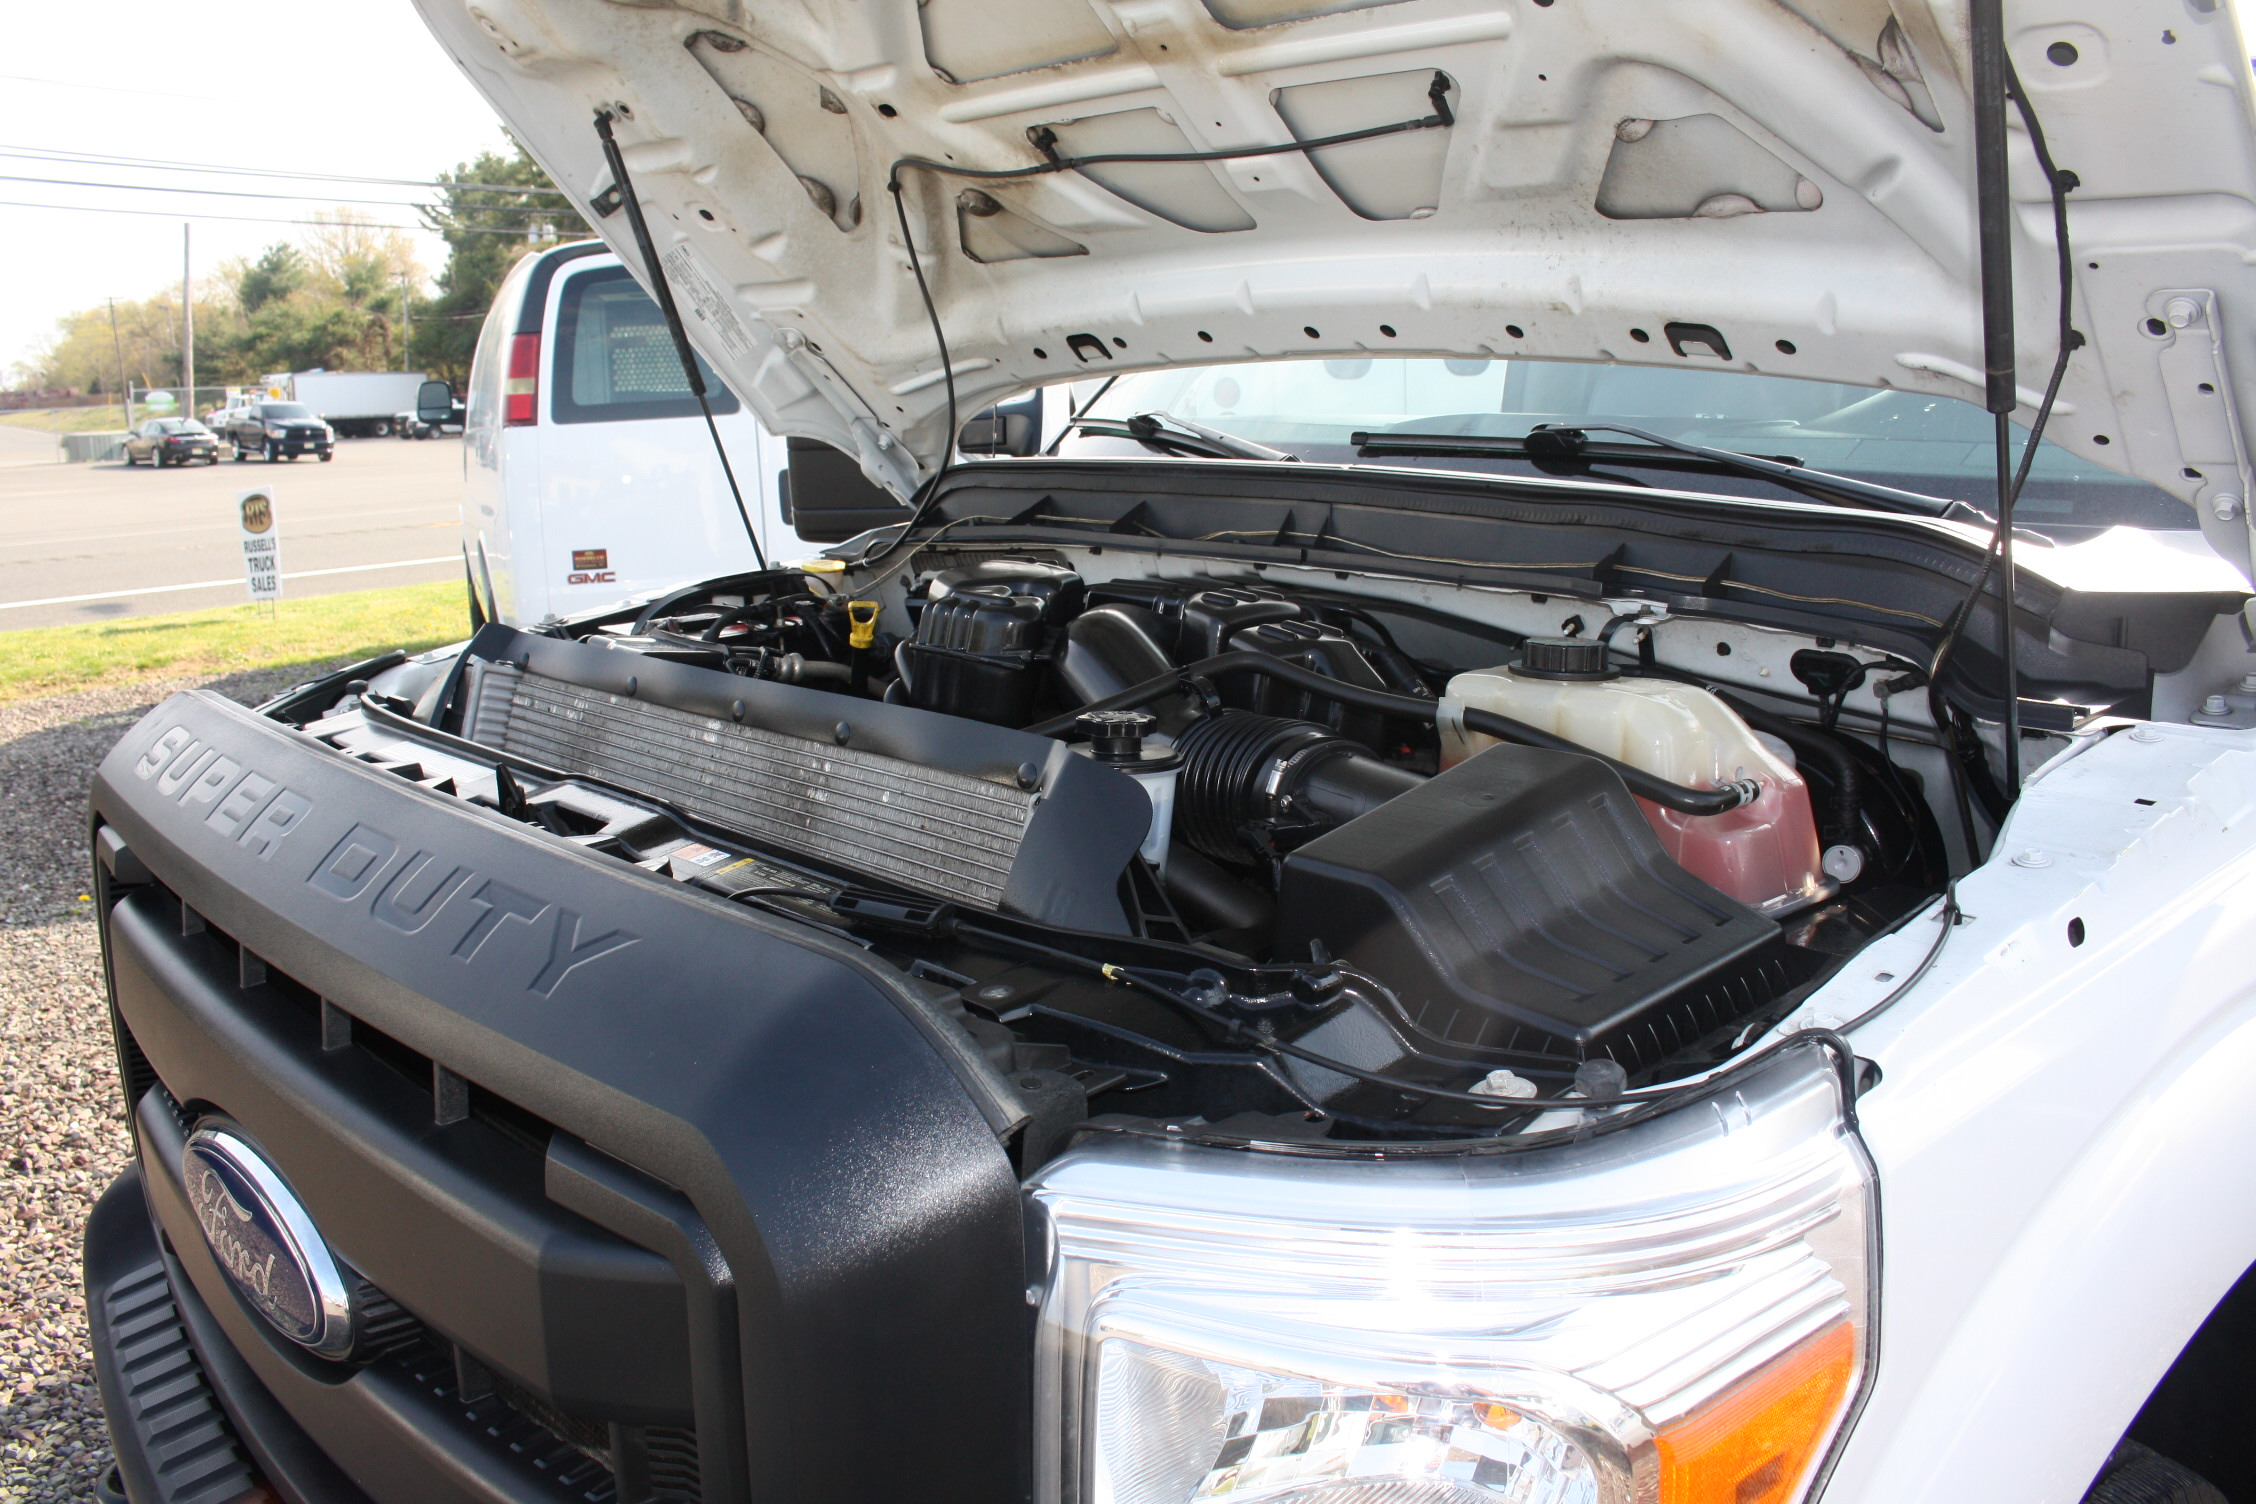 IMG 3604 - 2015 FORD F250 OPEN UTILITY TRUCK